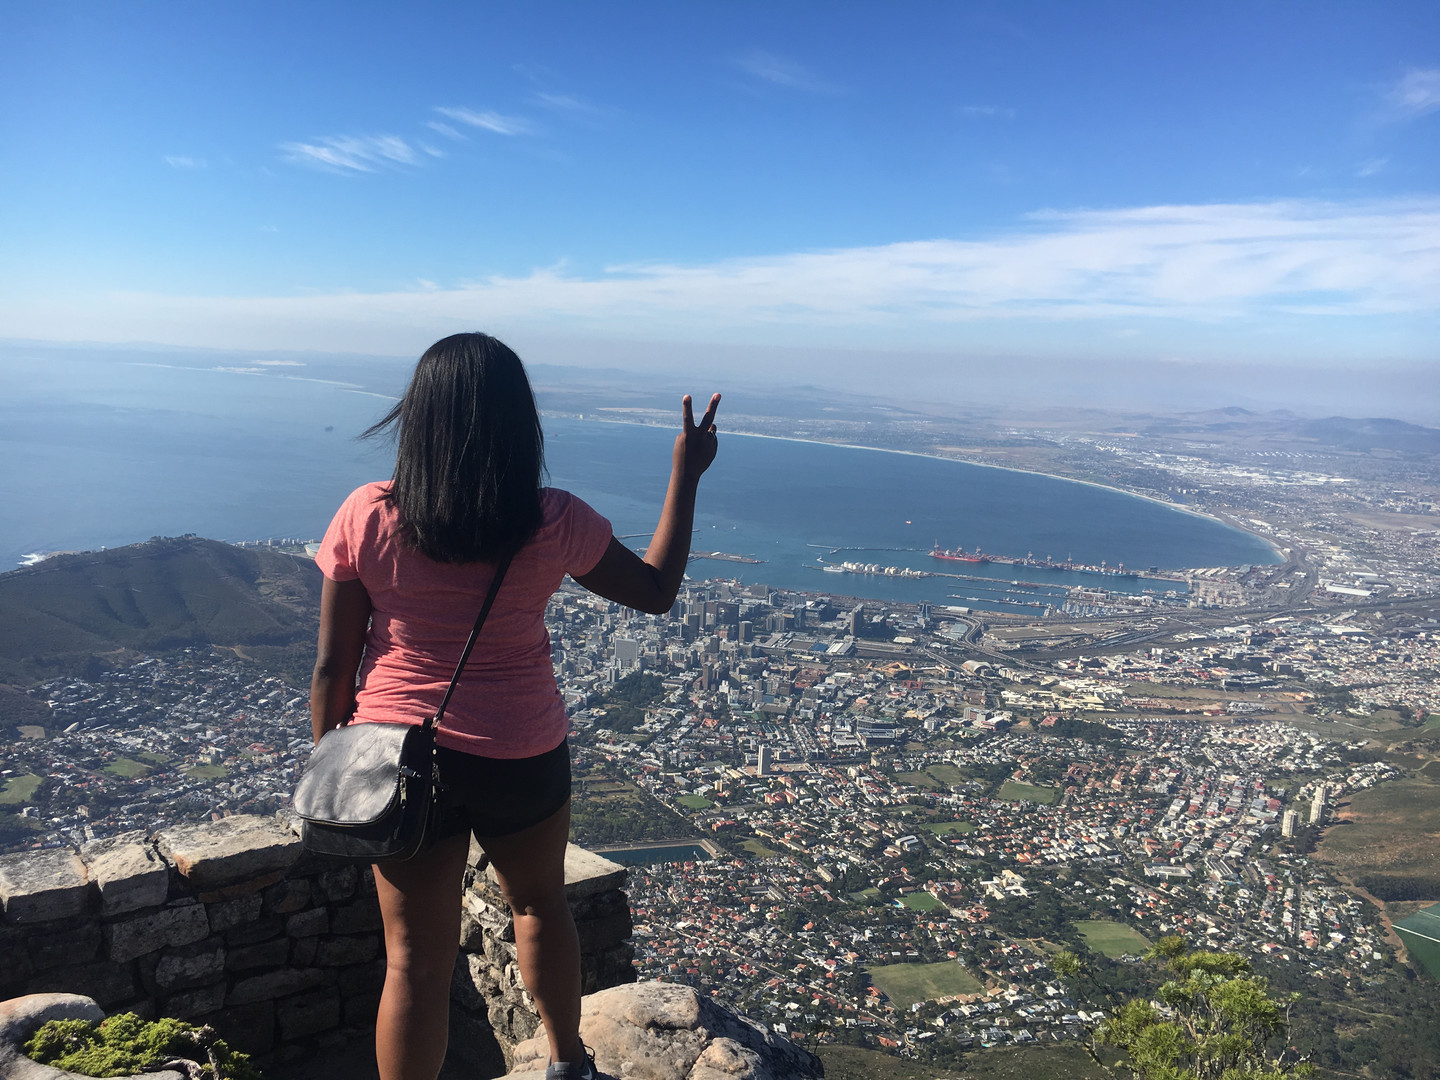 On top of Table Mountian in South Africa!